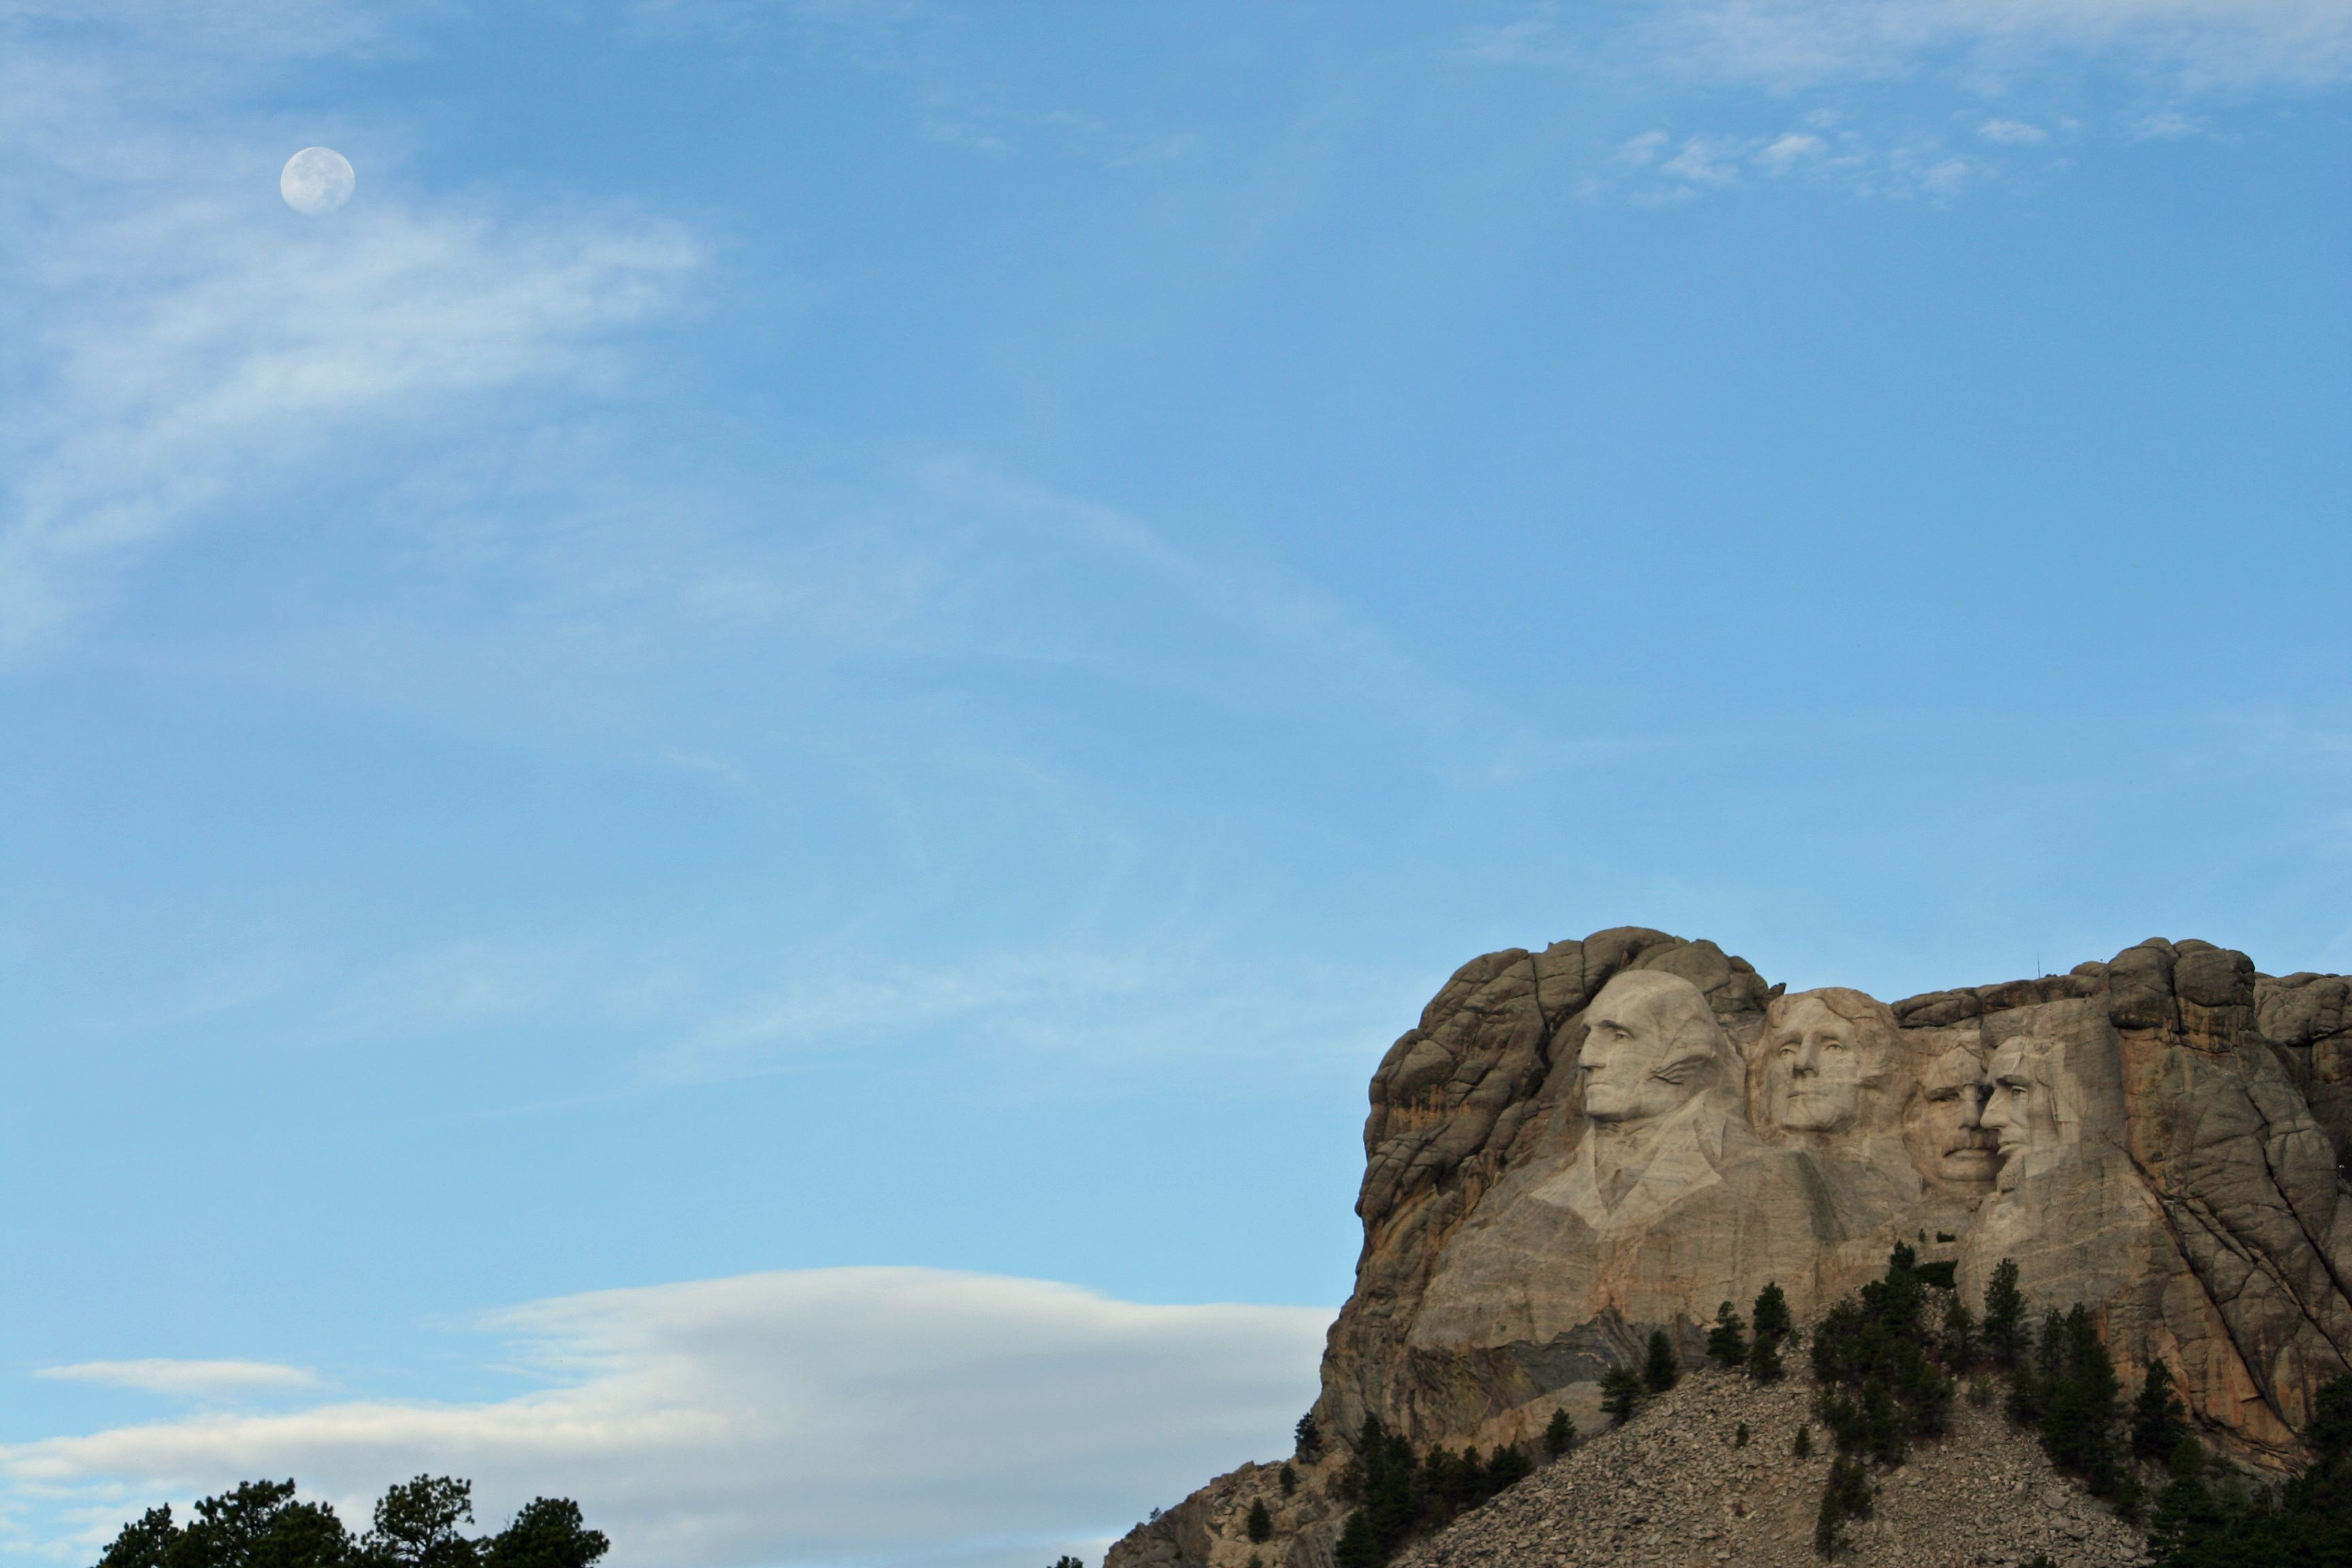 I was headed to Iron Mountain Road to make the drive between Rushmore and Custer,  early in the morning.  The sun had just risen, and the moon was still out.  (Mt. Rushmore, SD)